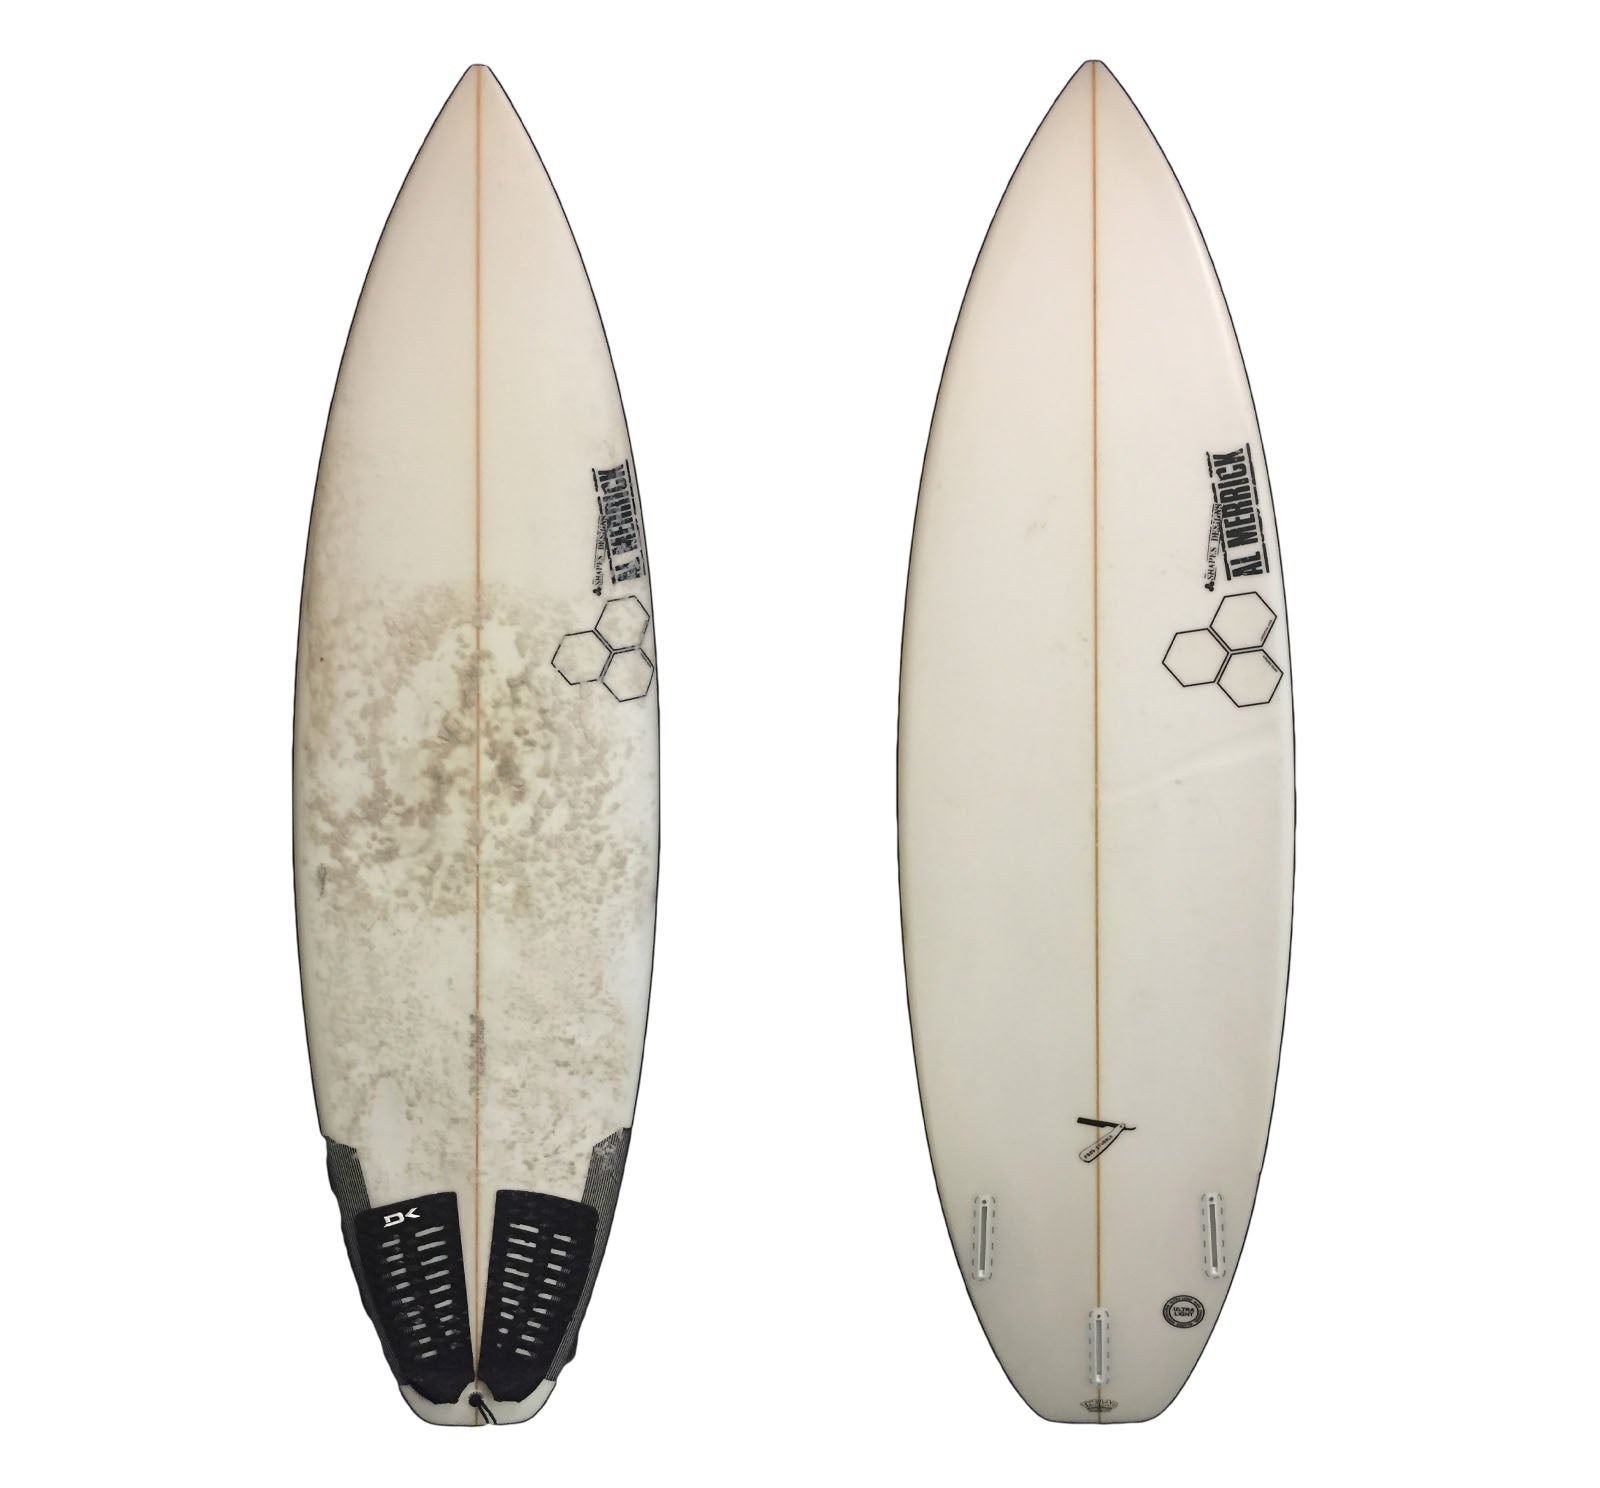 Channel Islands Fred Stubble 6'0 Used Surfboard